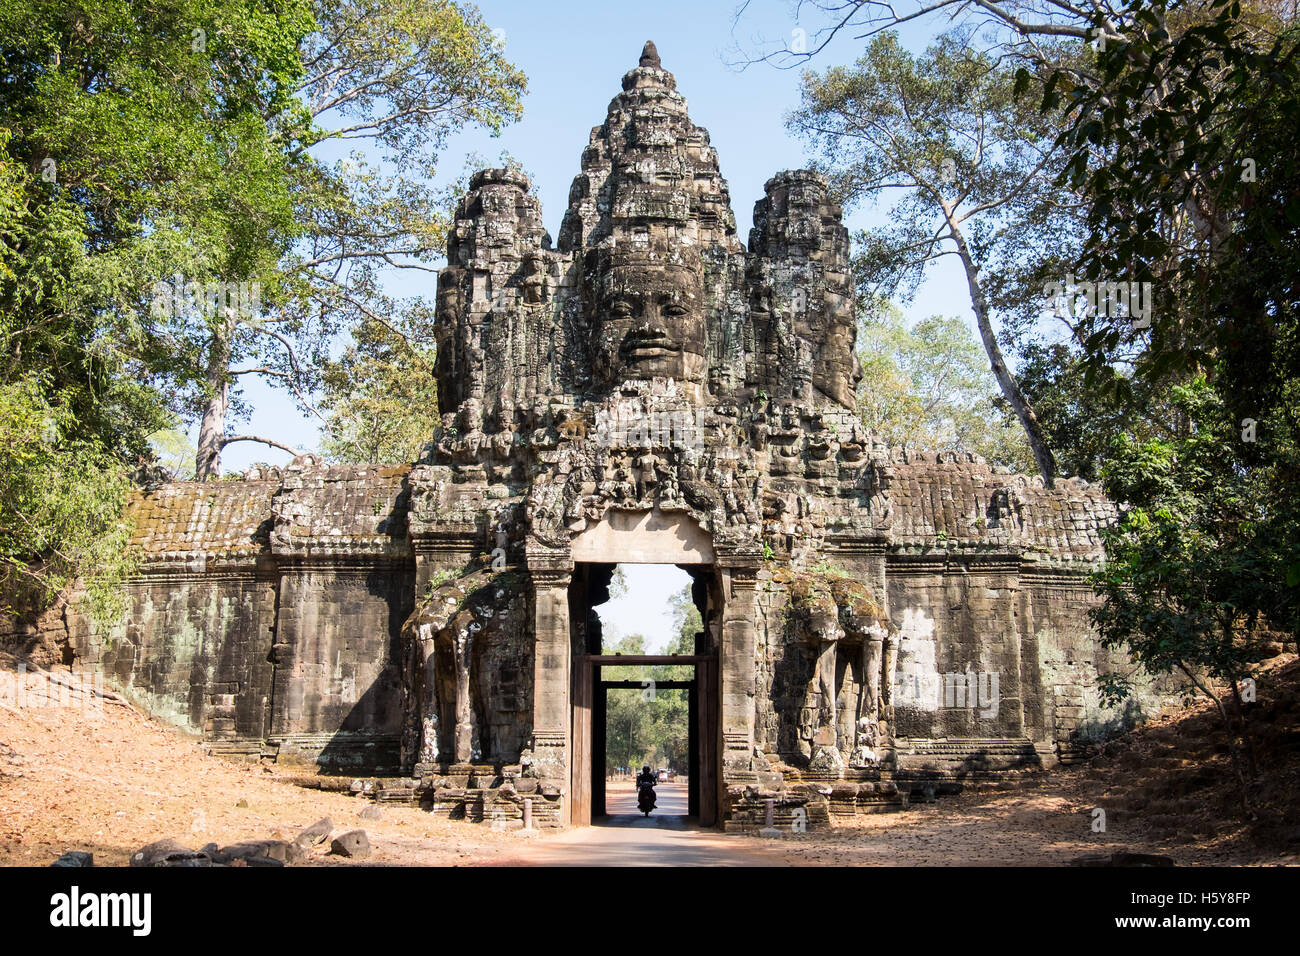 The eastern Victory gate at Angkor Thom - Stock Image